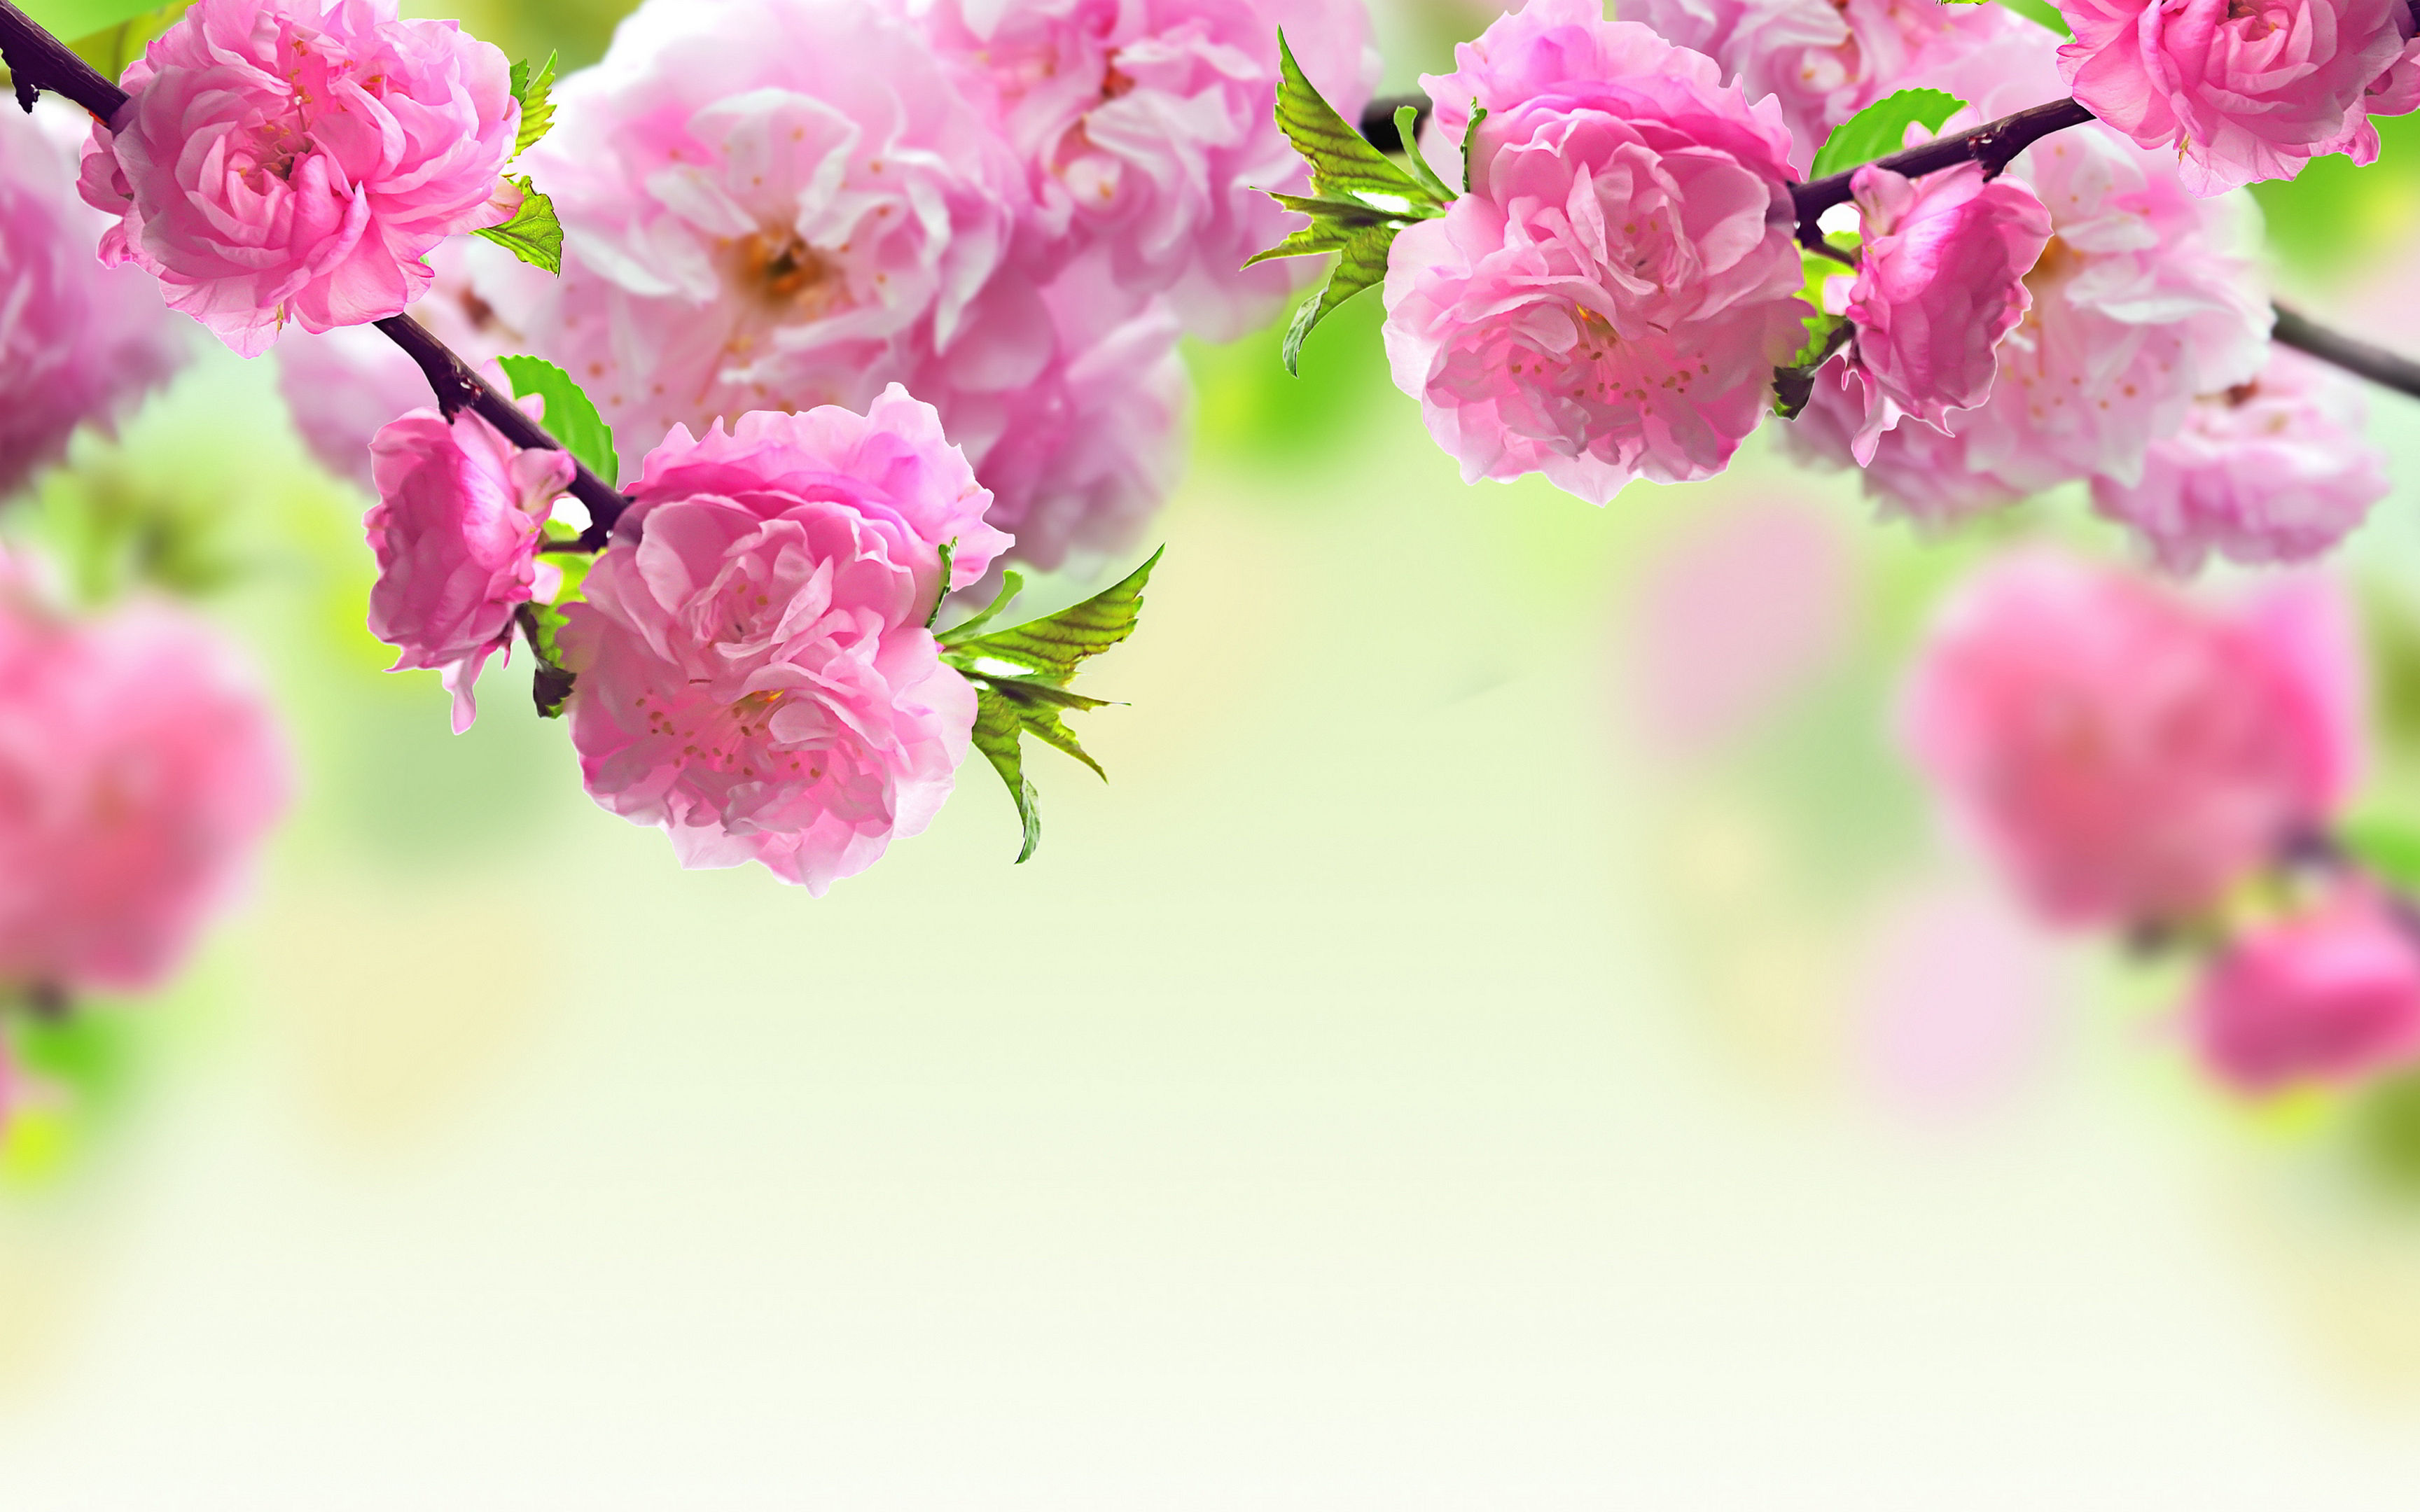 New Wallpapers Of Flowers